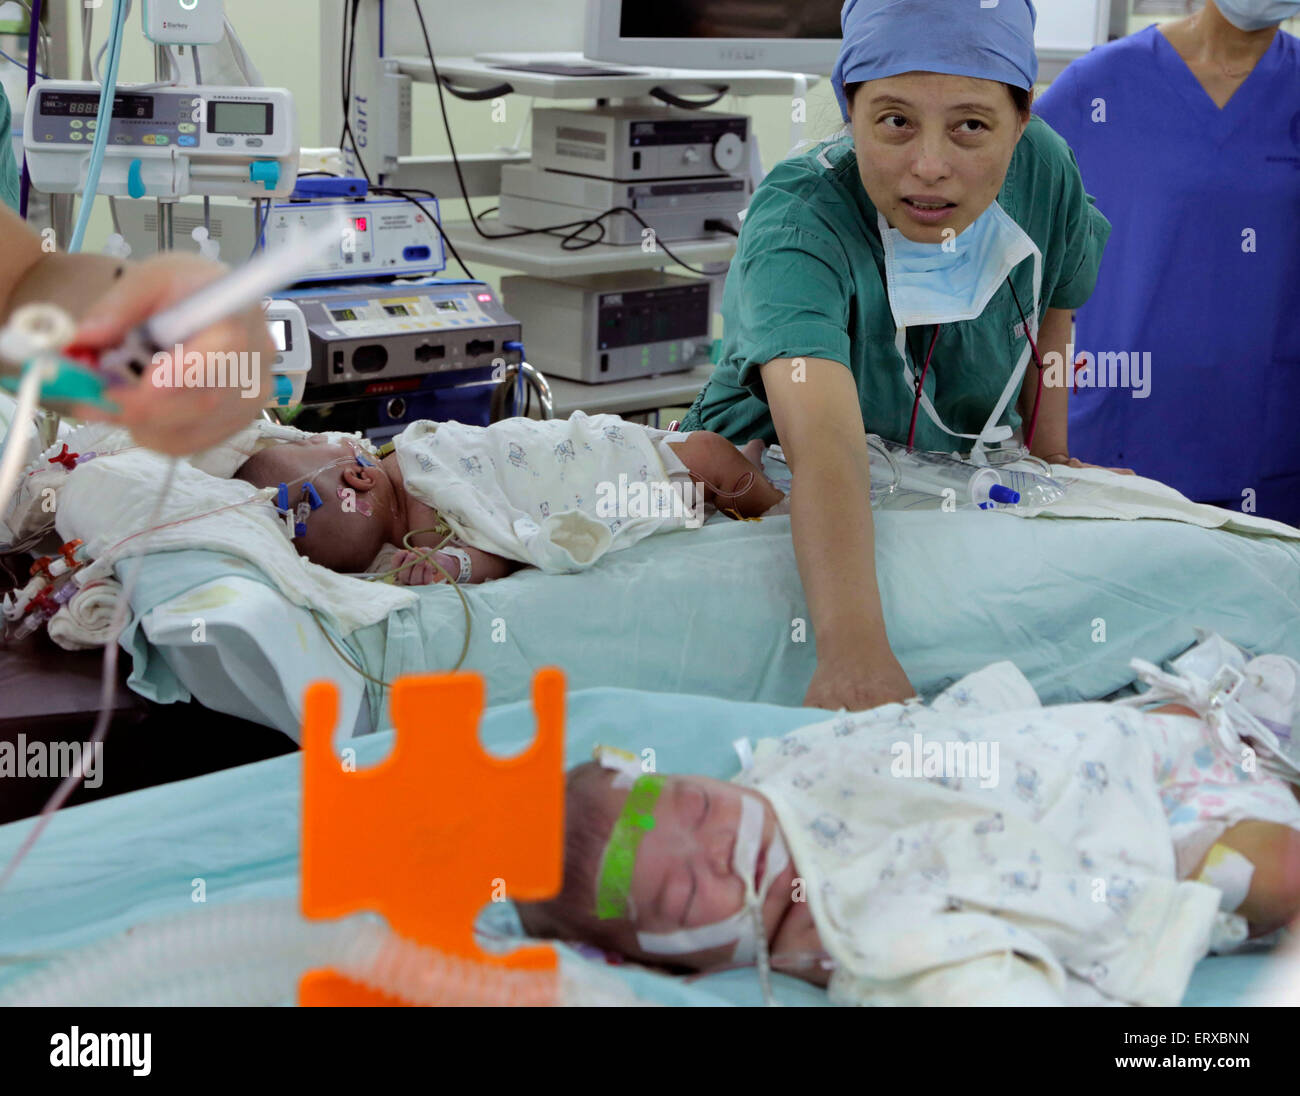 Shanghai. 9th June, 2015. Medical workers take care of the just separated conjoined twins at an ICU in east China's - Stock Image